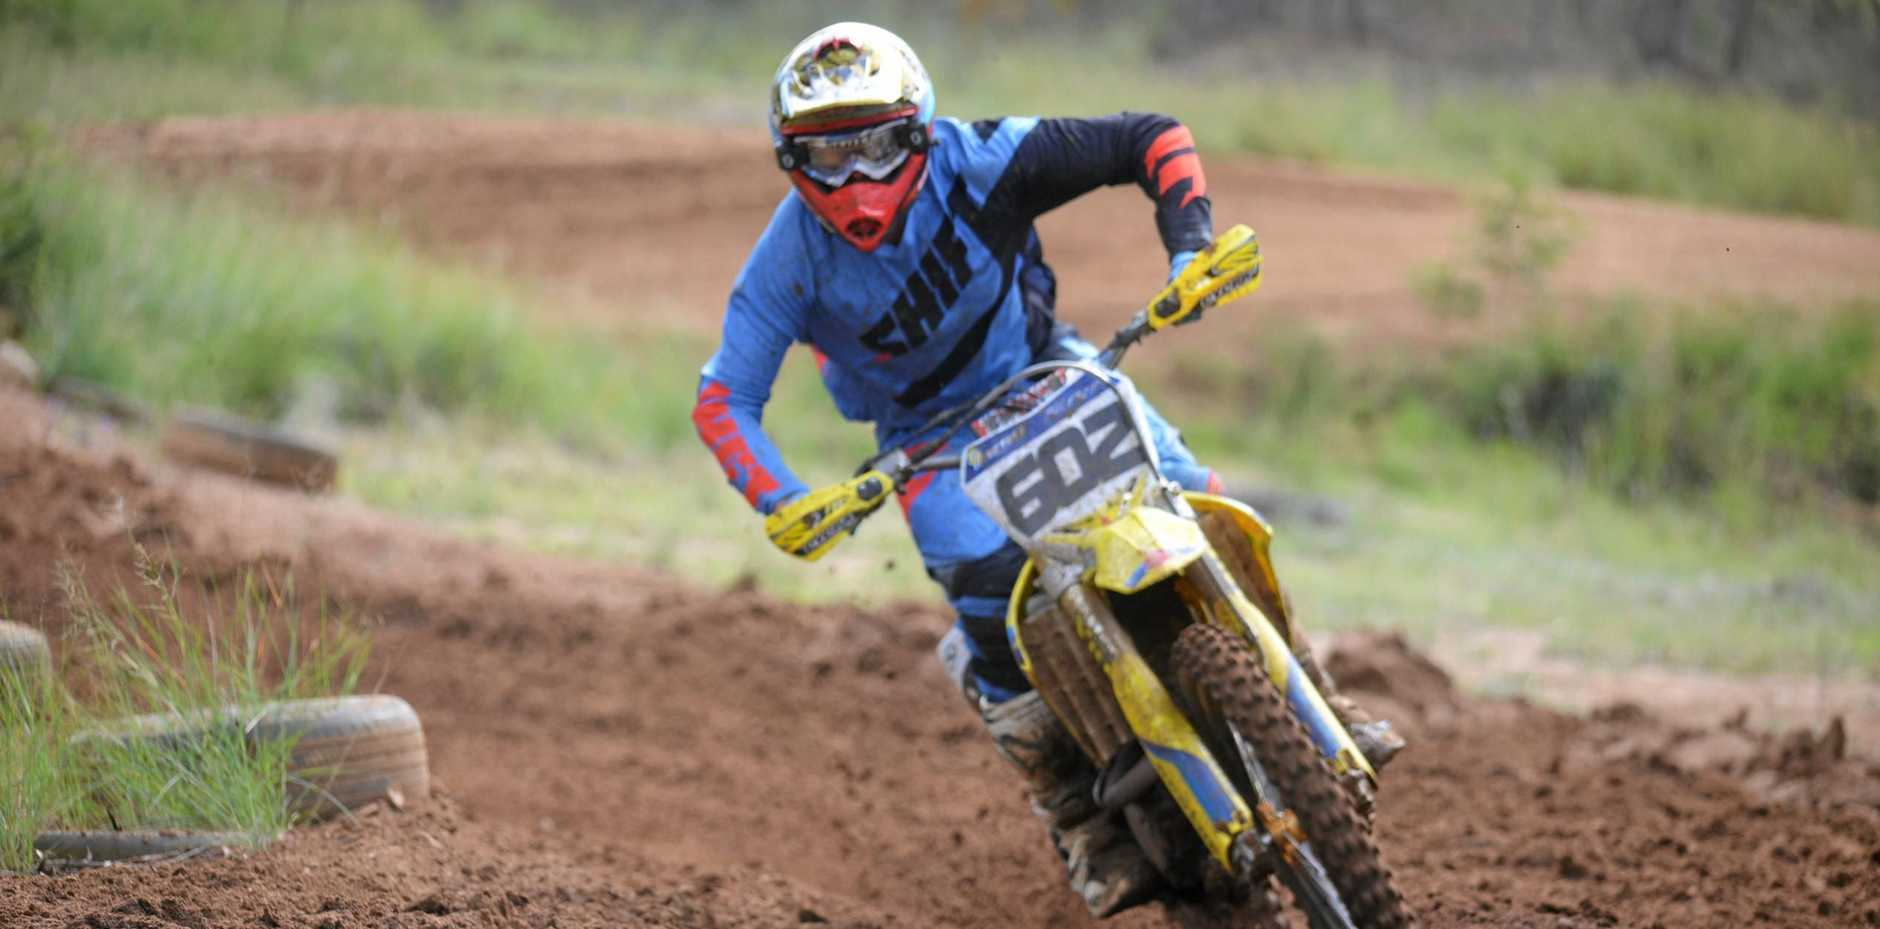 Action on a practice day at the Warwick and District Dirt Bike Club track at Morgan Park.